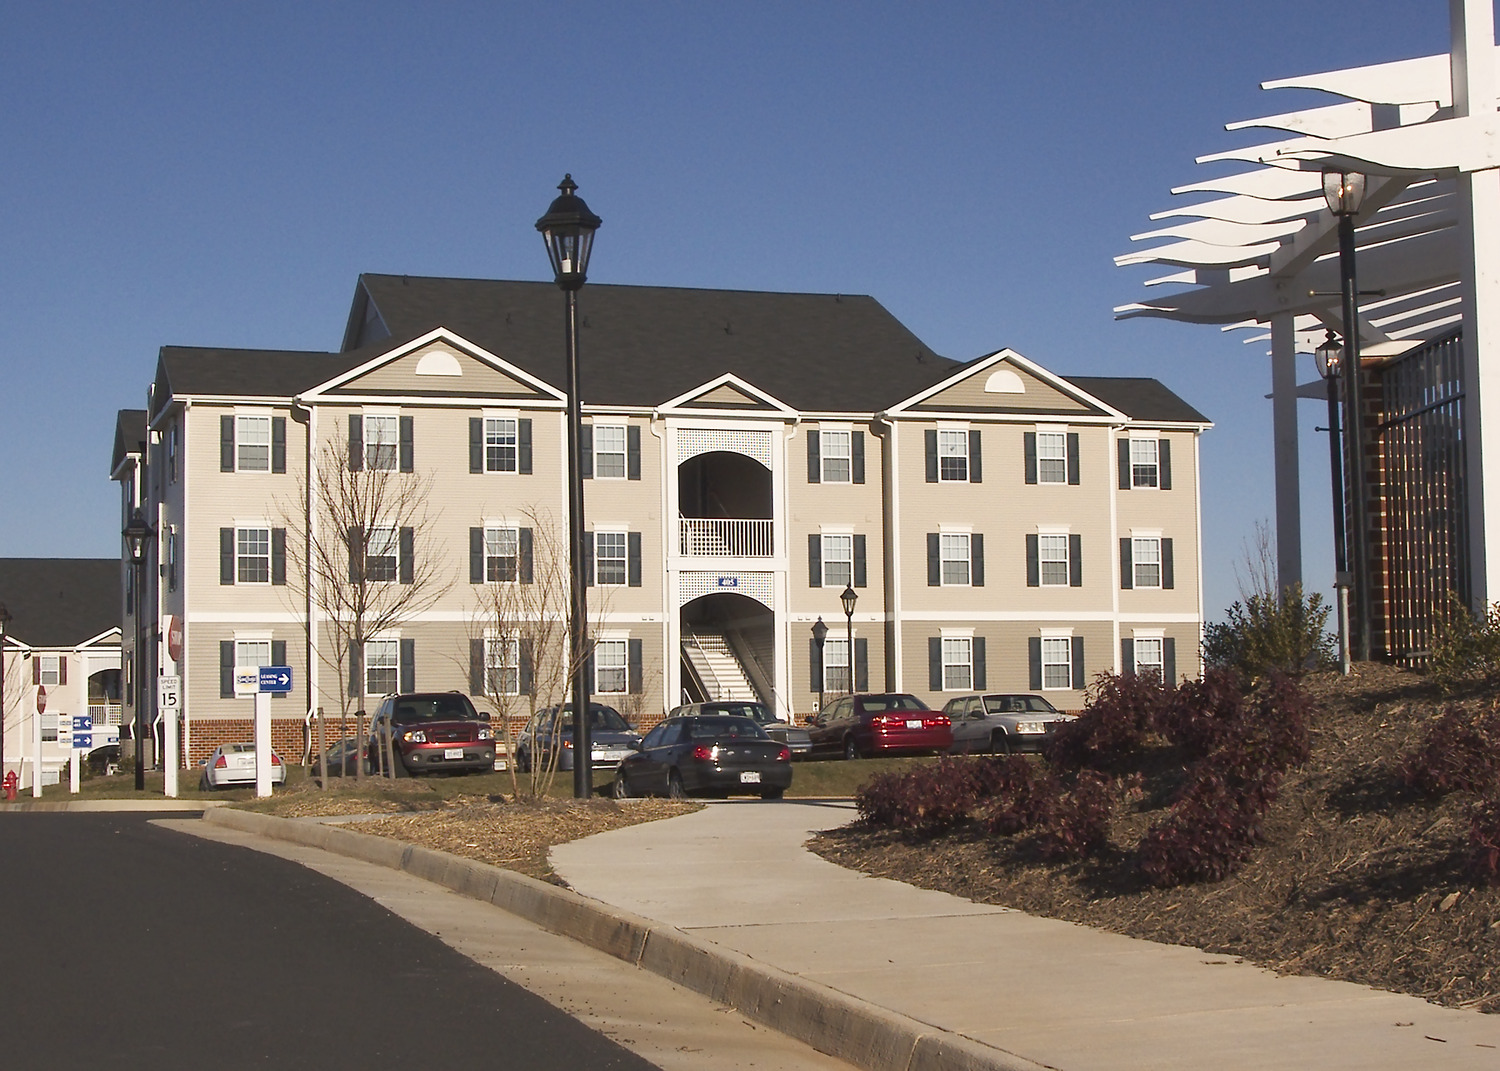 CBG builds Sunchase at Longwood, a 560-Bed, 140-Unit Student Housing Community in Farmville, VA - Image #4